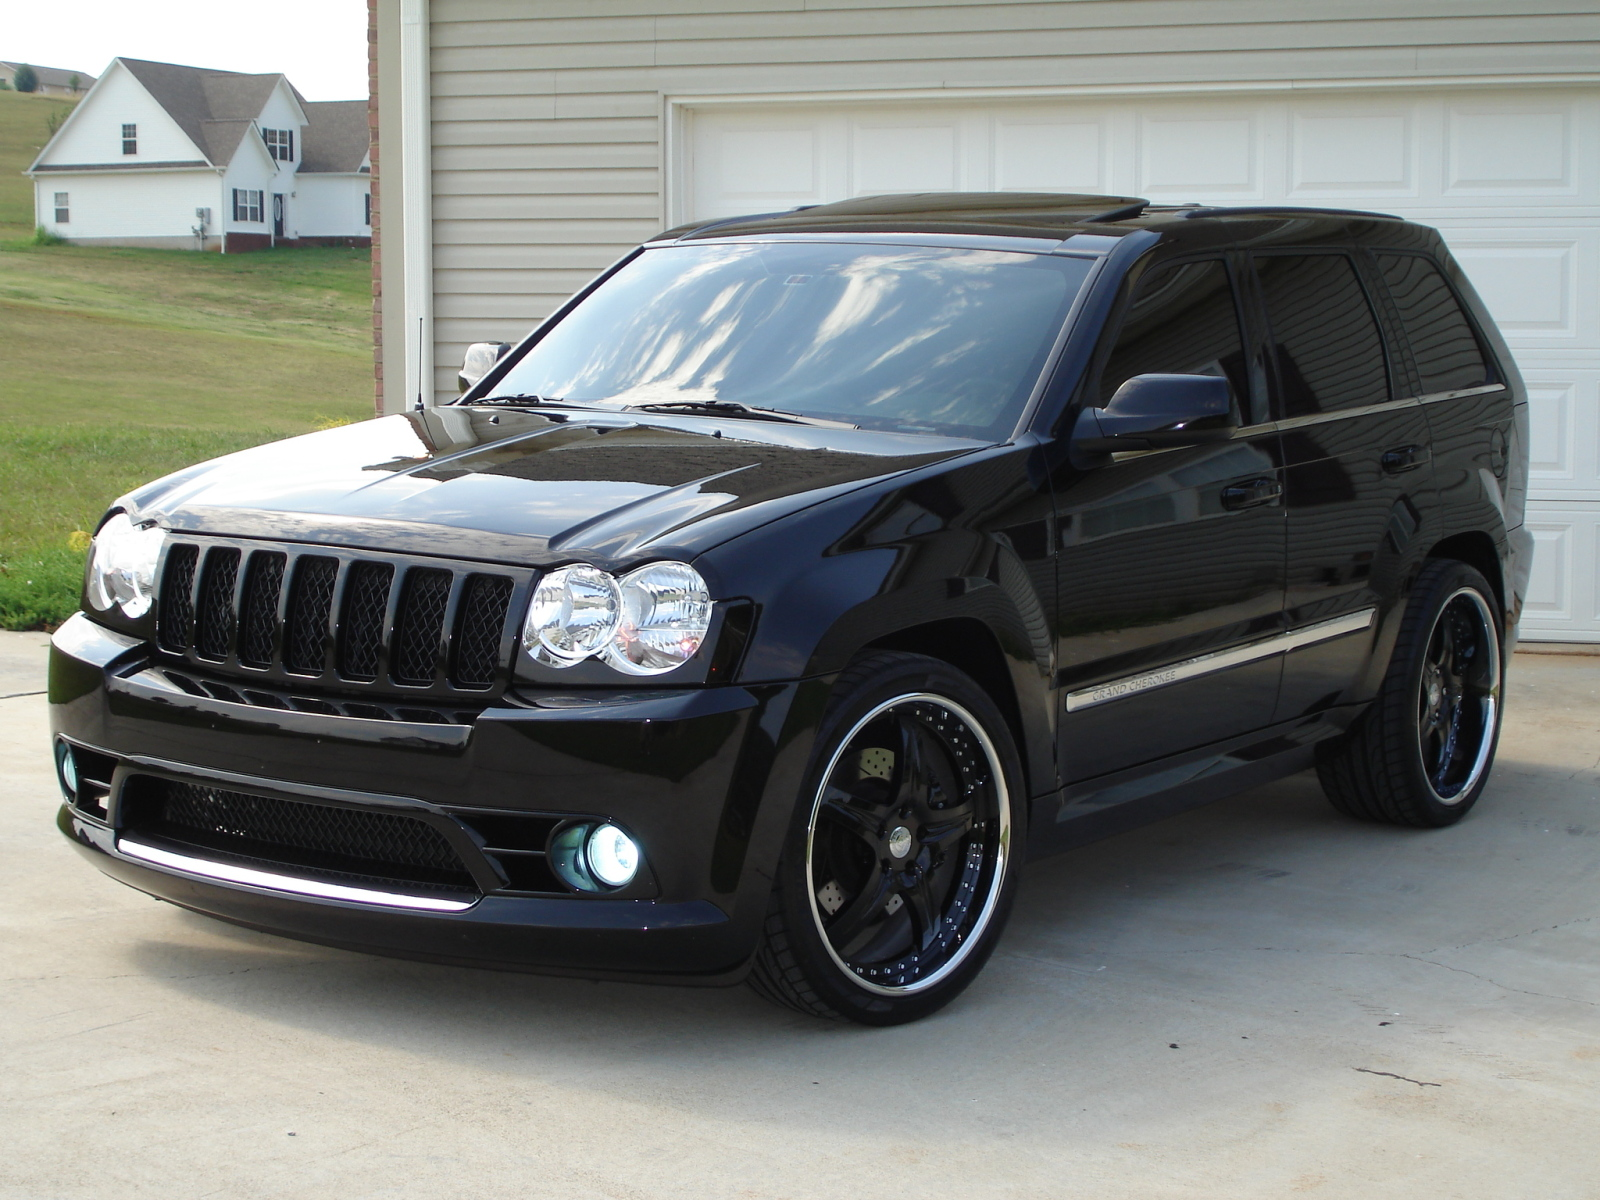 Jeep Grand Cherokee Srt8 For Sale >> Jeep Grand Cherokee Srt8 Picture 9 Reviews News Specs